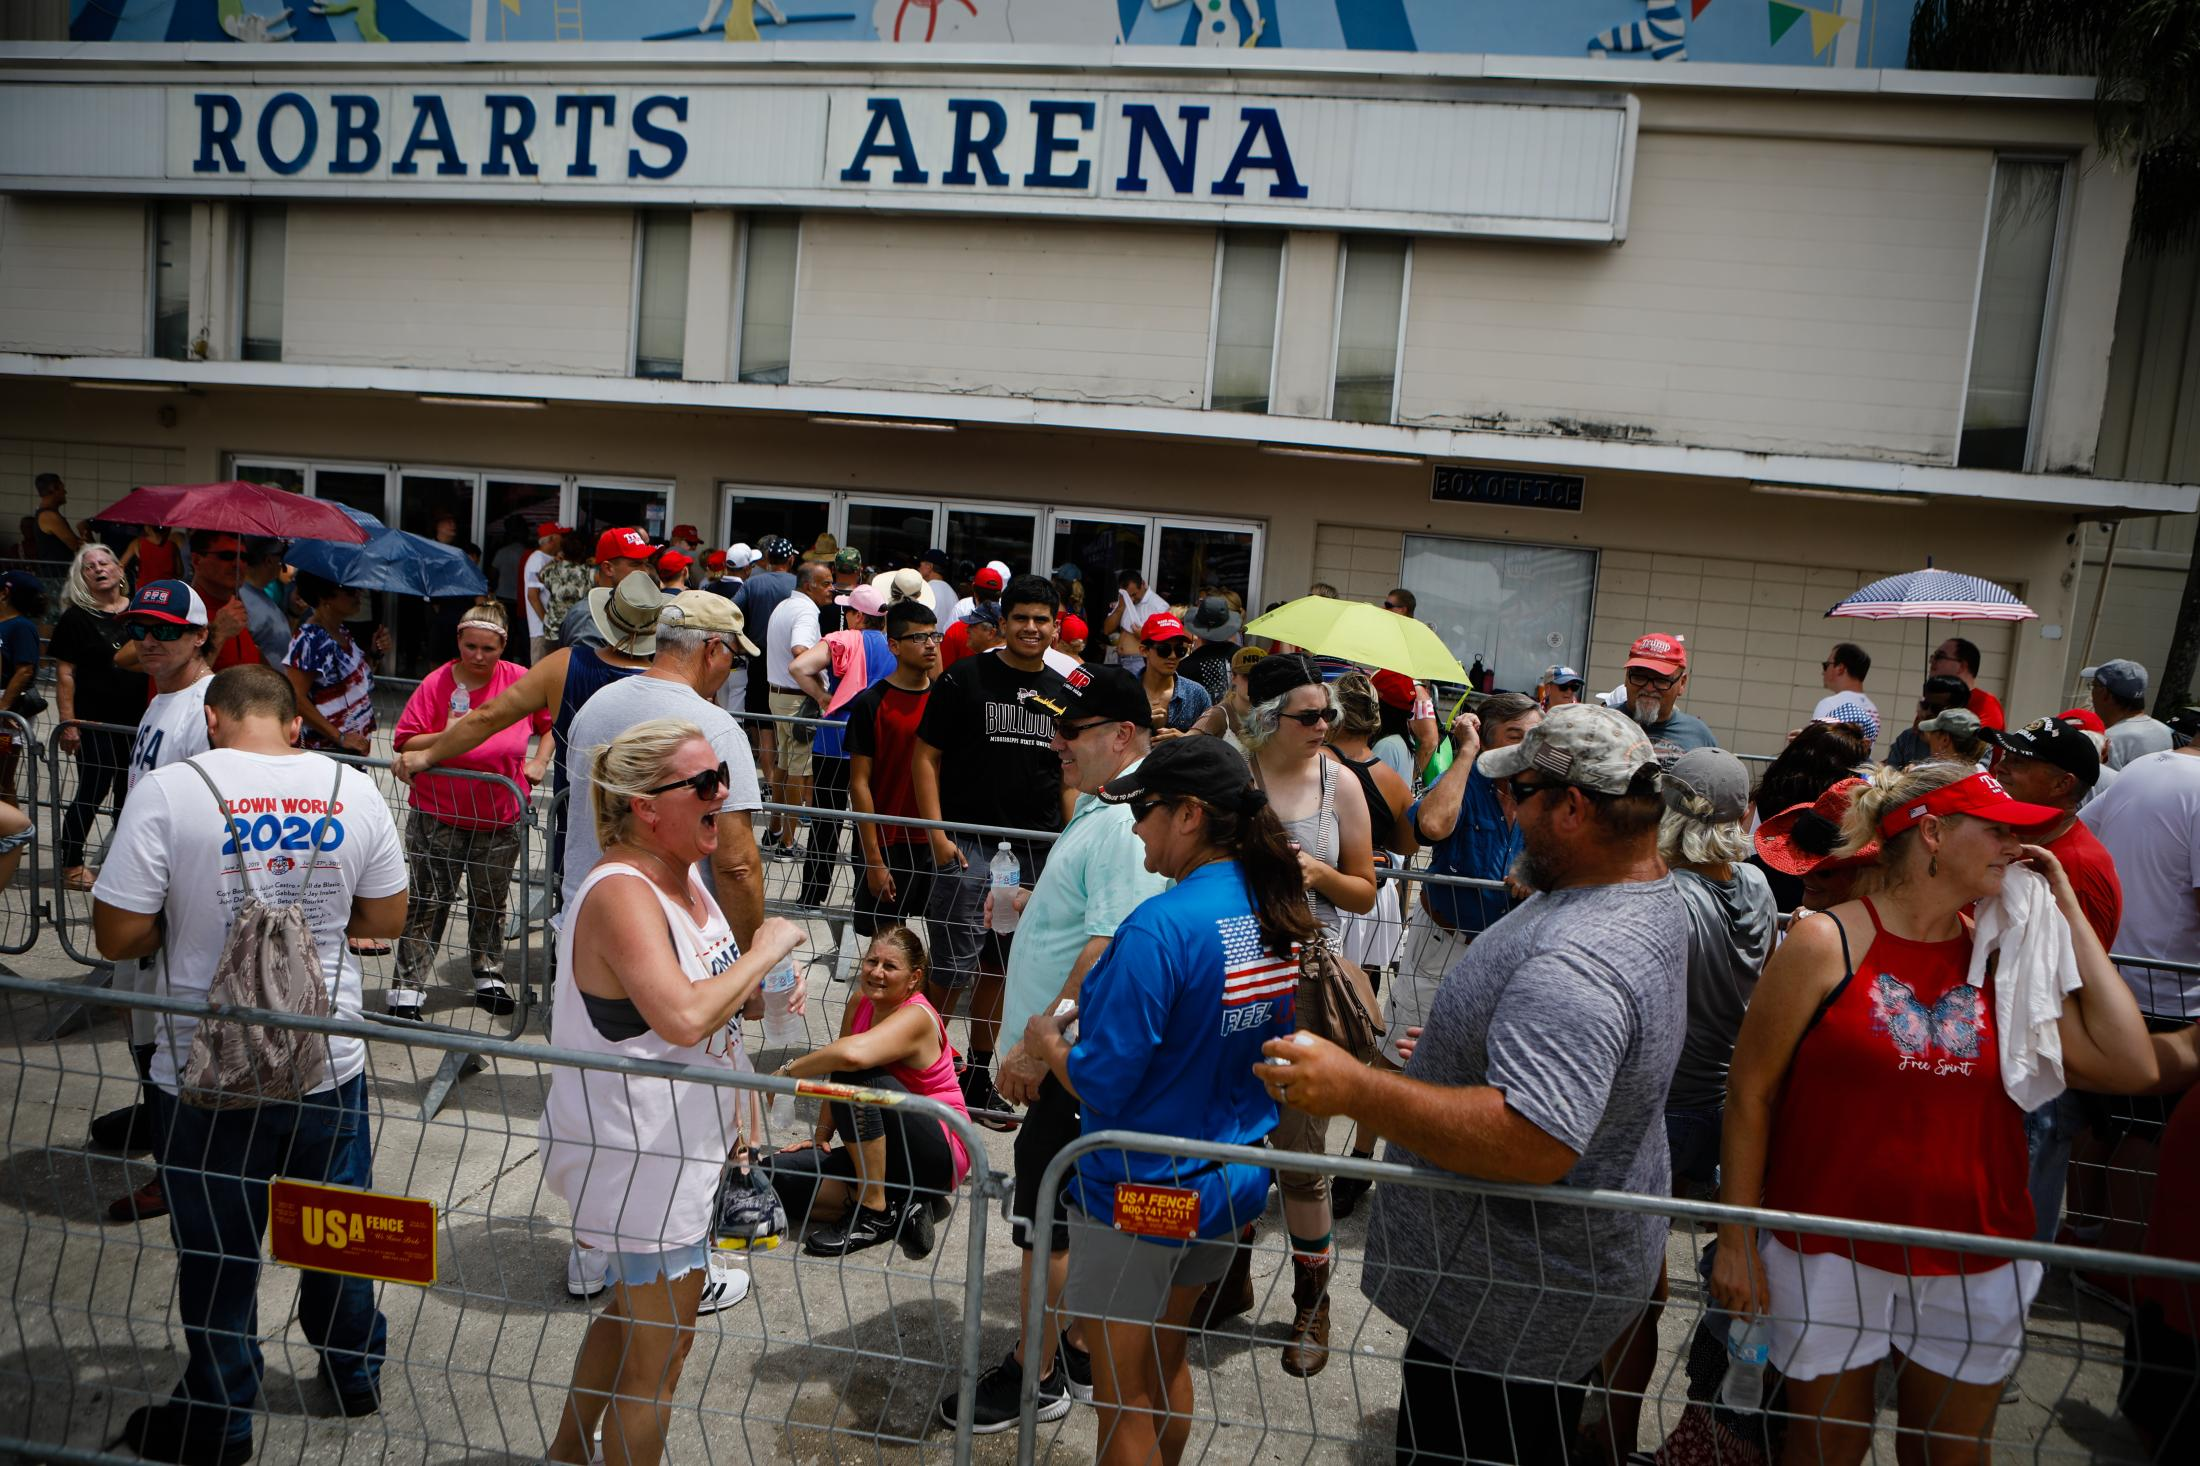 SARASOTA, FL - JULY 03: People wait in line to enter to a rally host by former U.S. President Donald Trump on July 3, 2021 in Sarasota, Florida. Former U.S. President Donald J. Trump holds a major rally co-sponsored by the Republican Party of Florida and marks President Trump's further support of the MAGA agenda and the accomplishments of his administration. (Photo by Eva Marie Uzcategui/Getty Images)